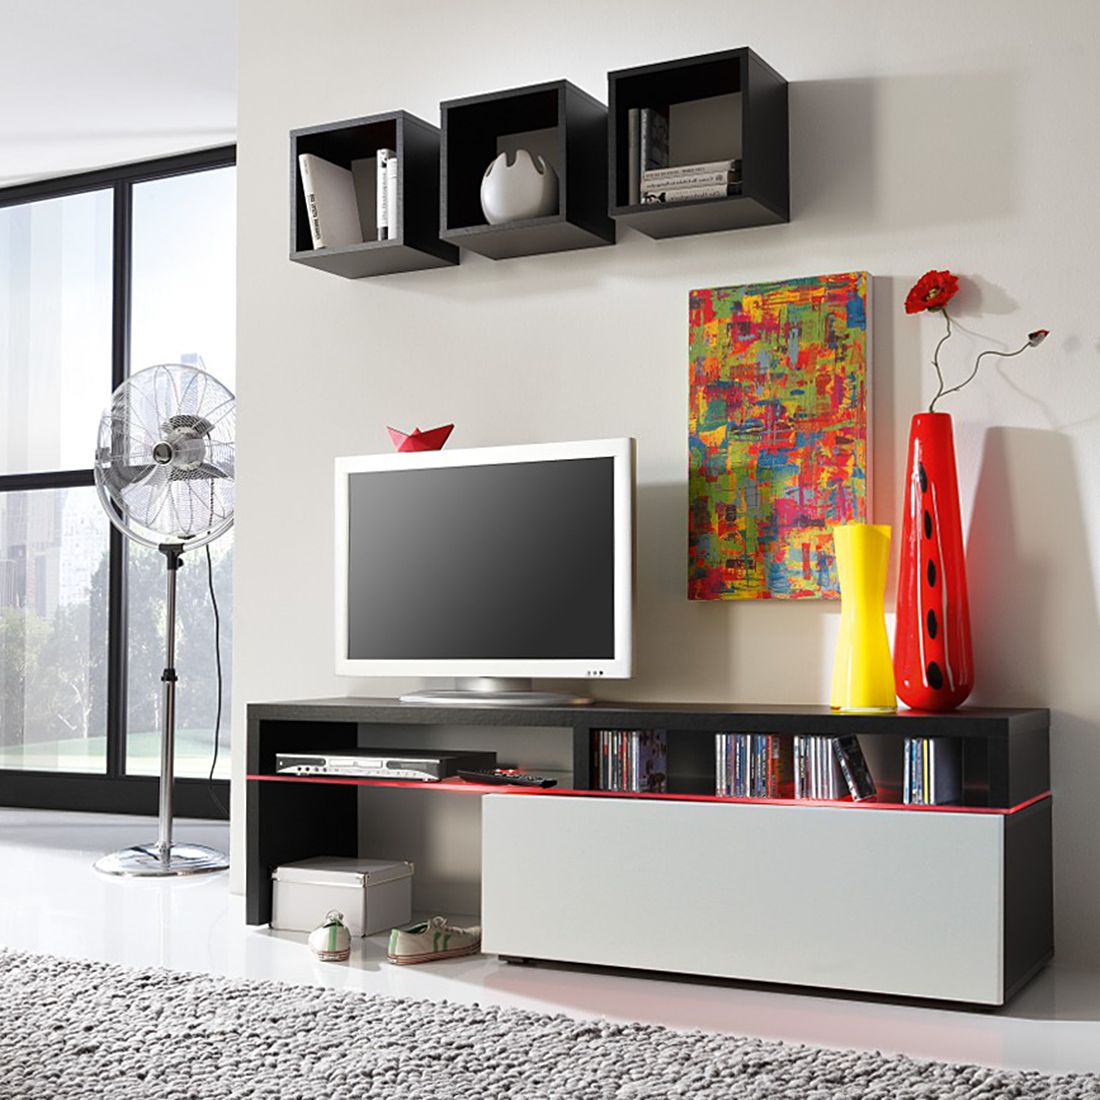 cs schmal archive seite 4 von 4. Black Bedroom Furniture Sets. Home Design Ideas